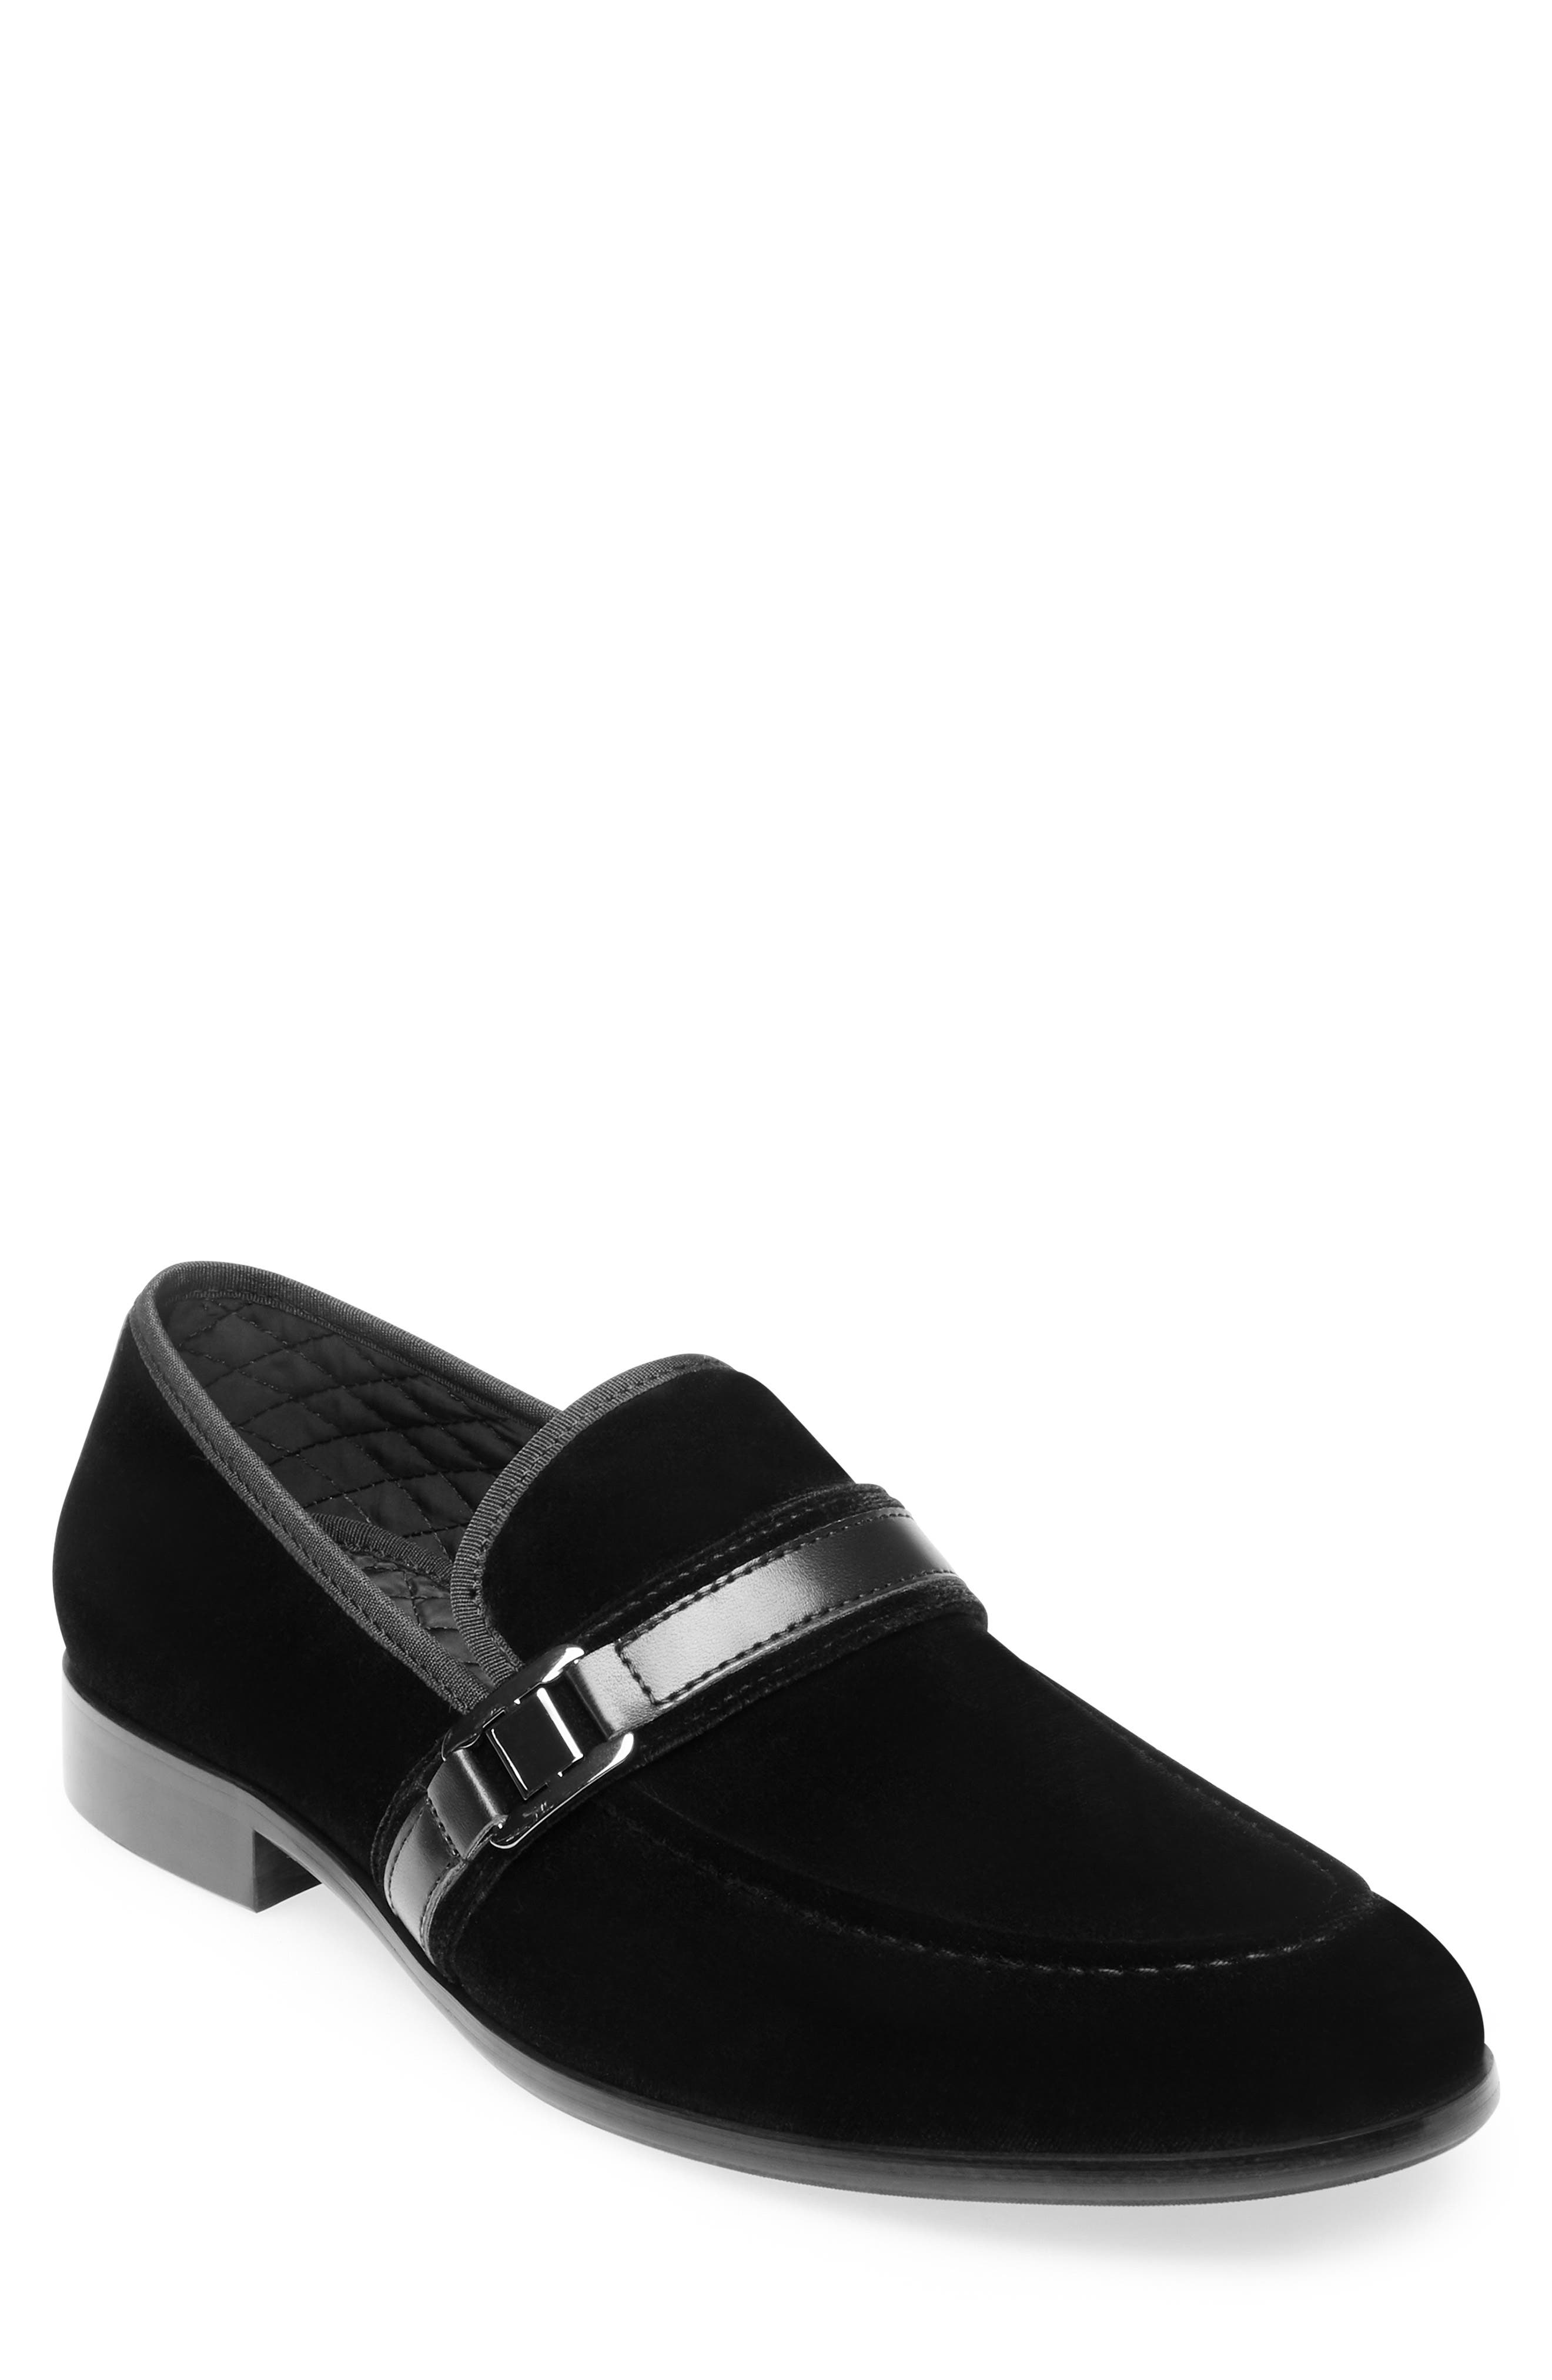 Macklin Bit Loafer,                         Main,                         color, BLACK FABRIC